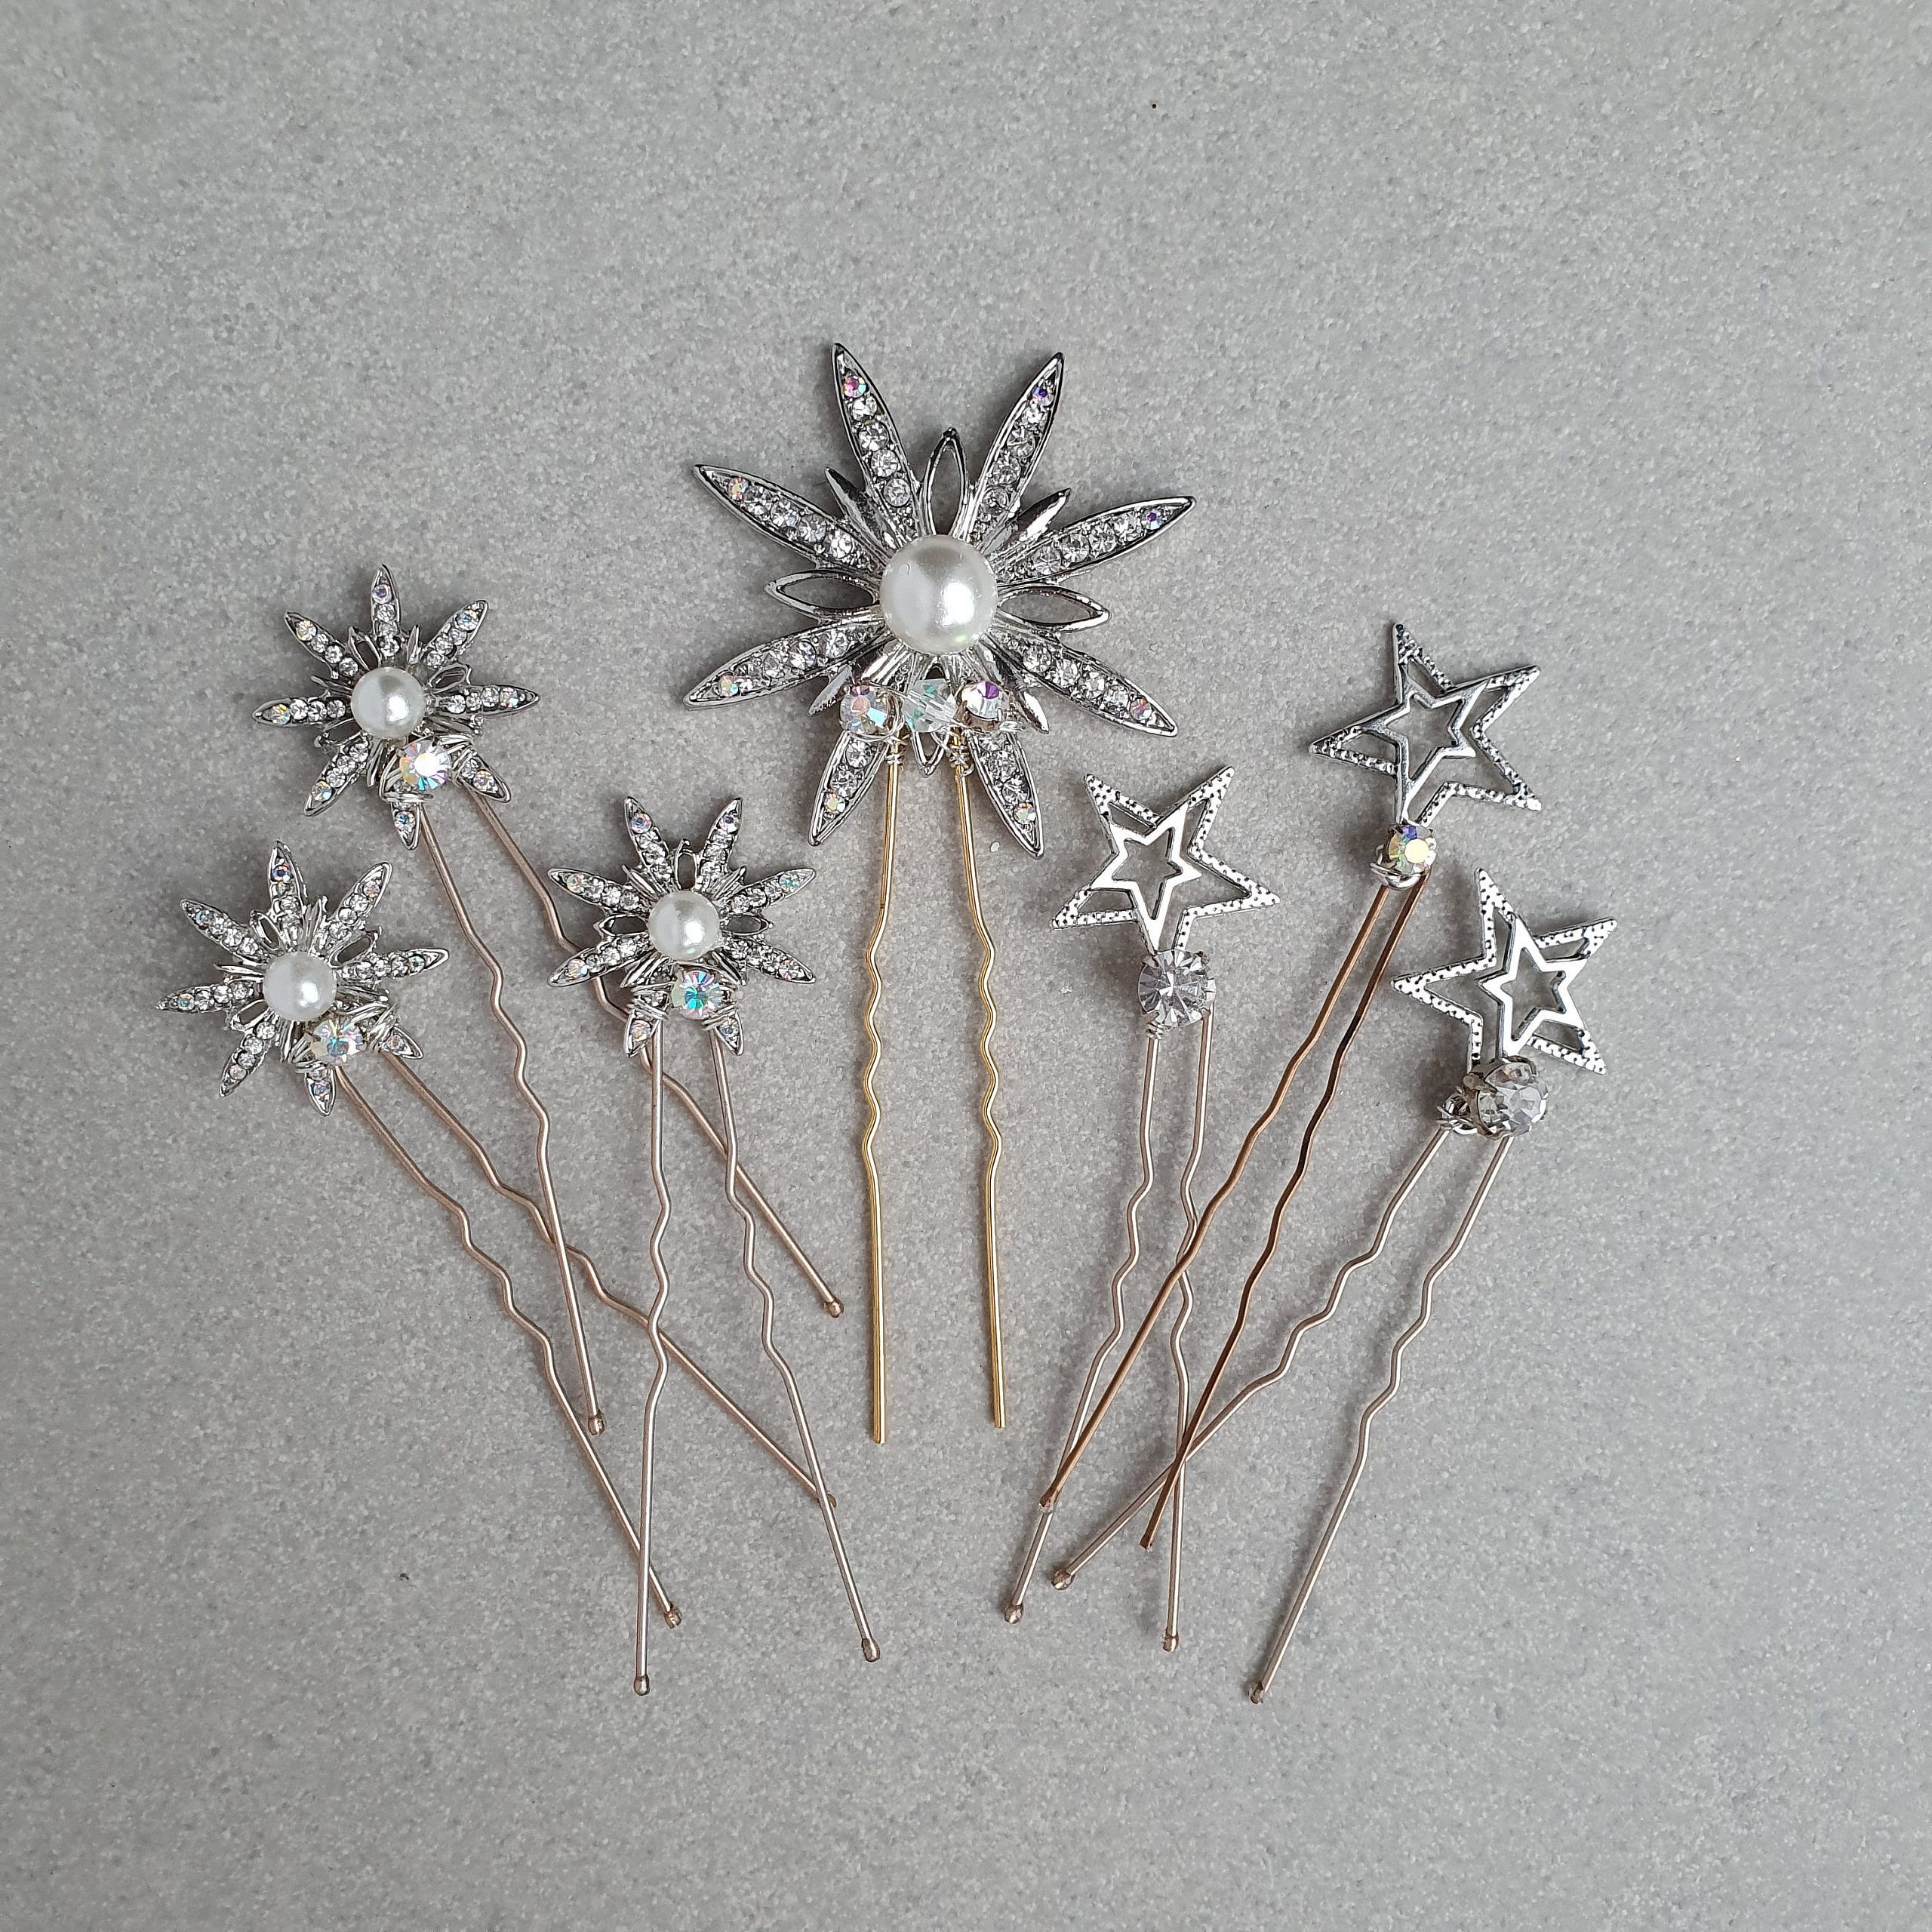 Celestial star diamante hairpins